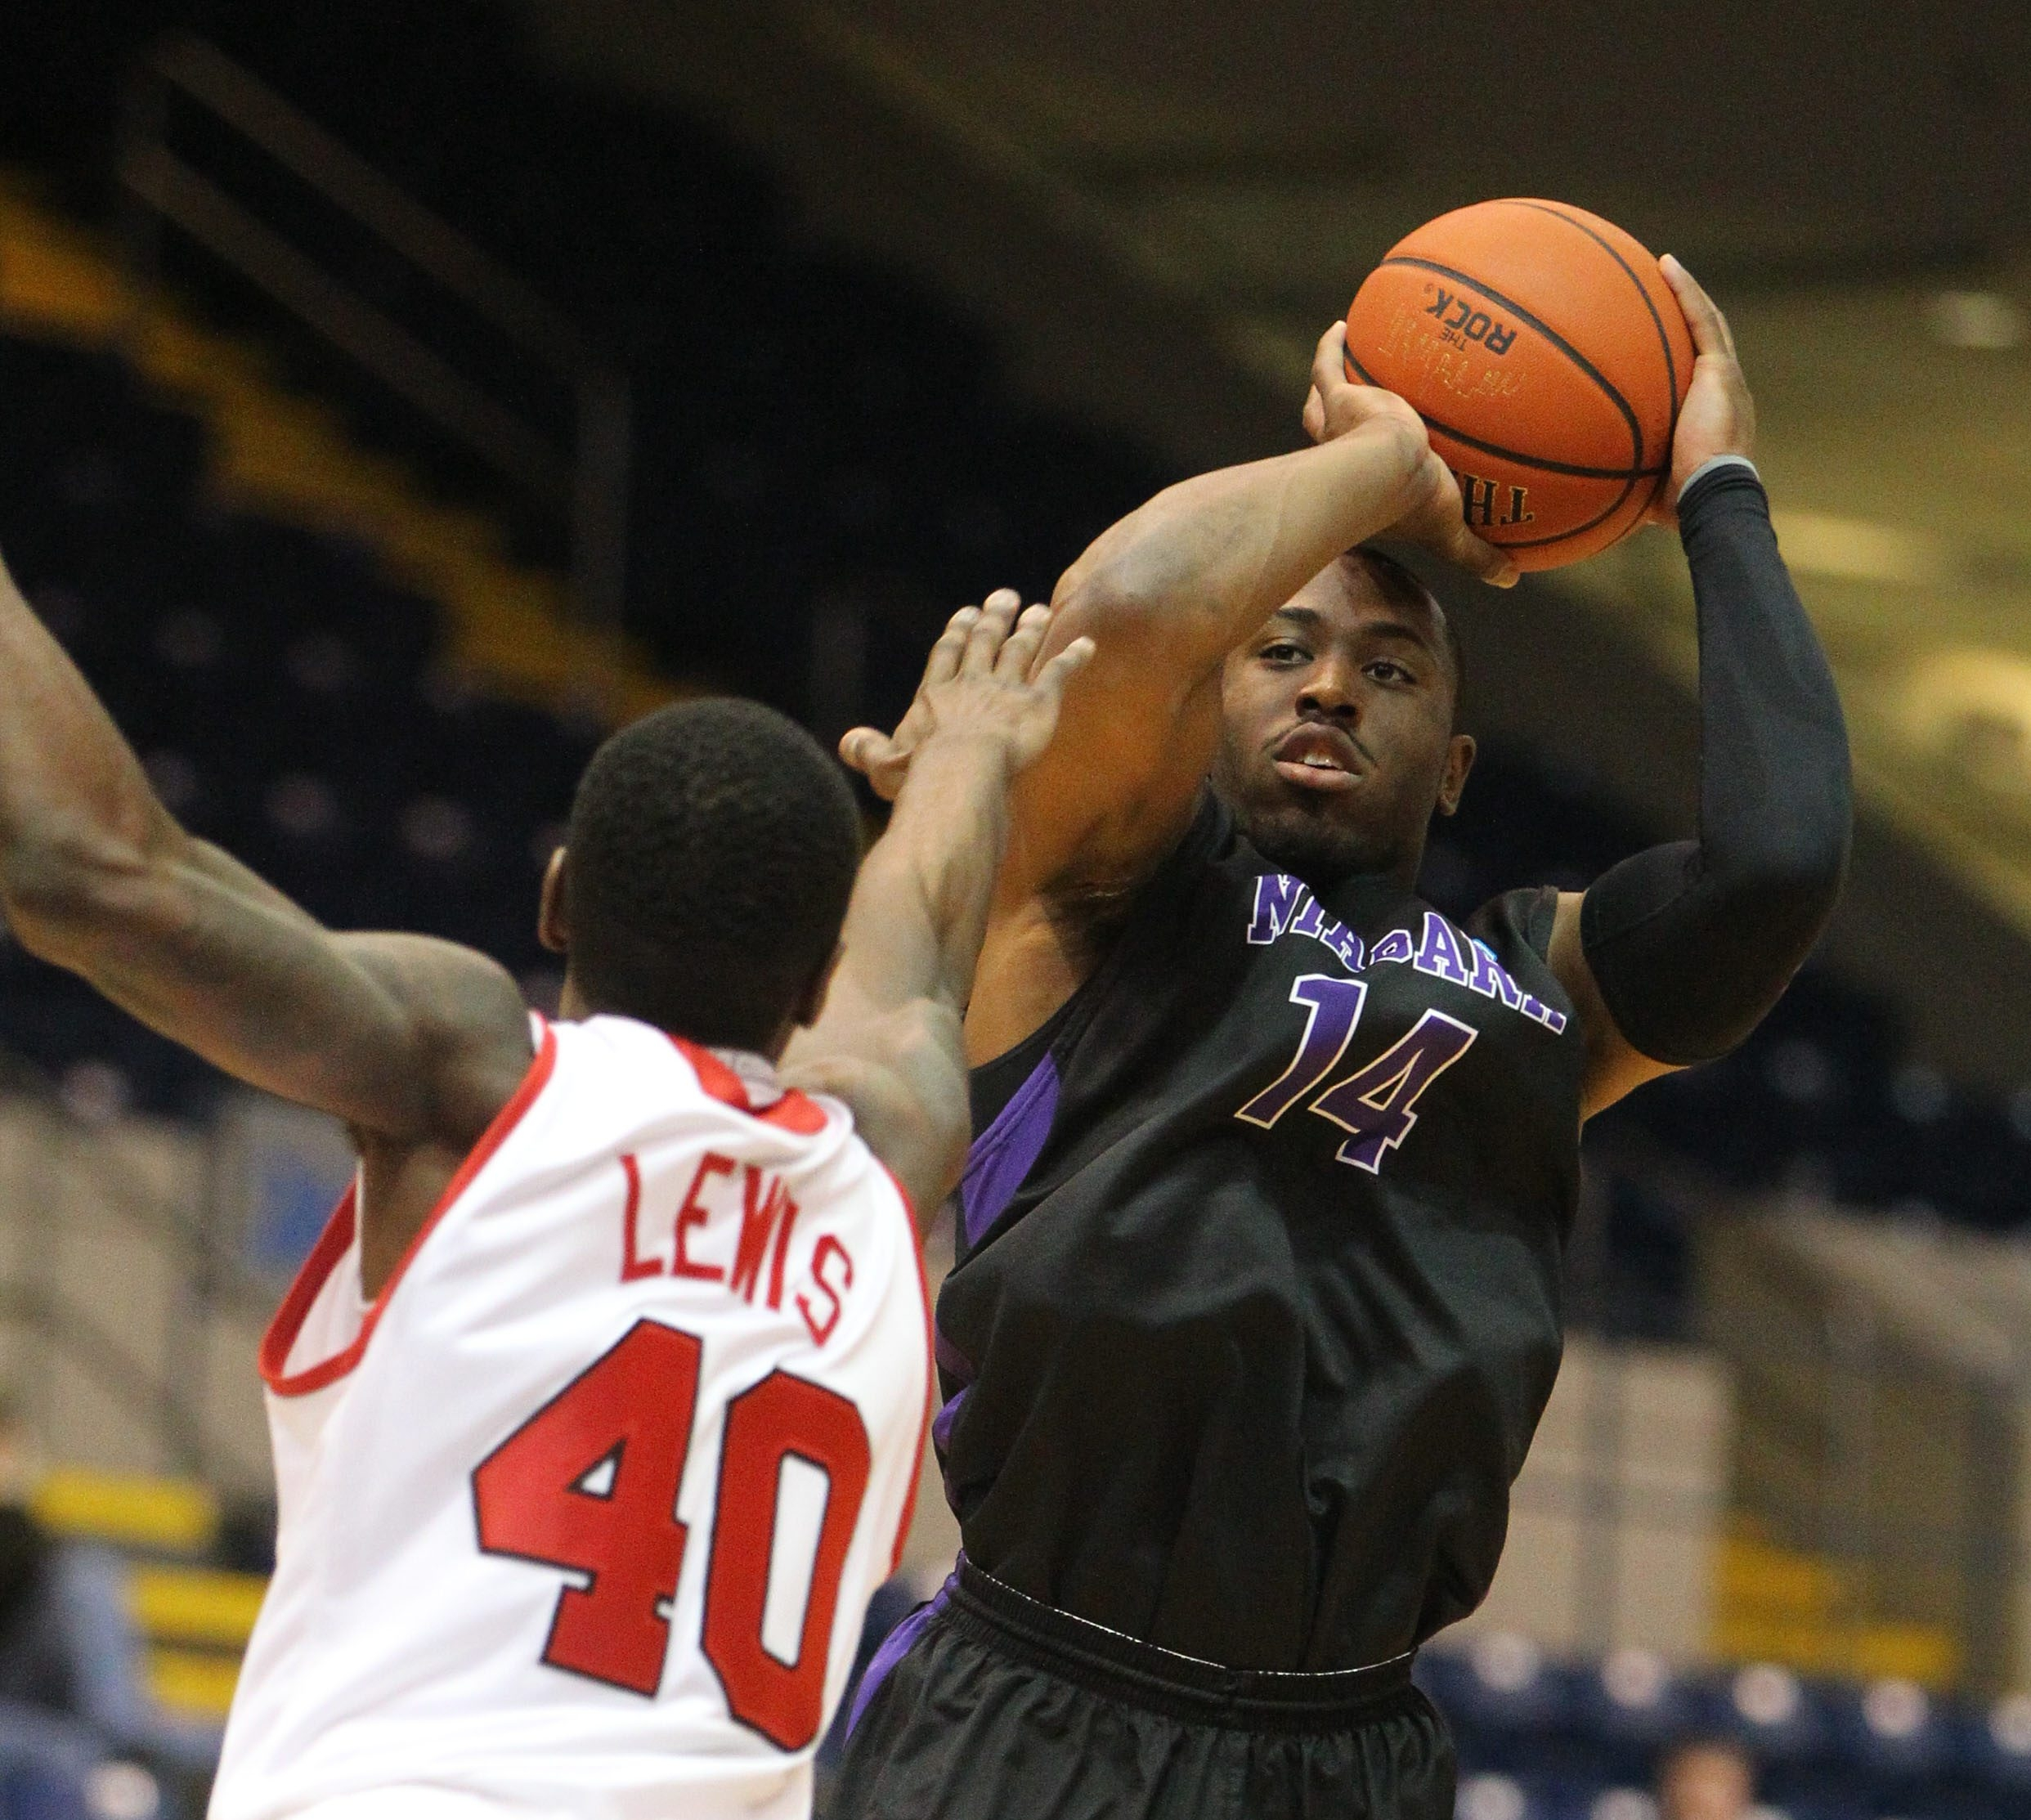 Niagara's Antoine Mason lifts a shot over Marist's Chavaughn Lewis in the first half . Mason scored 38 points as the Purple Eagles surprised Marist, 78-76, in the MAAC Tournament.